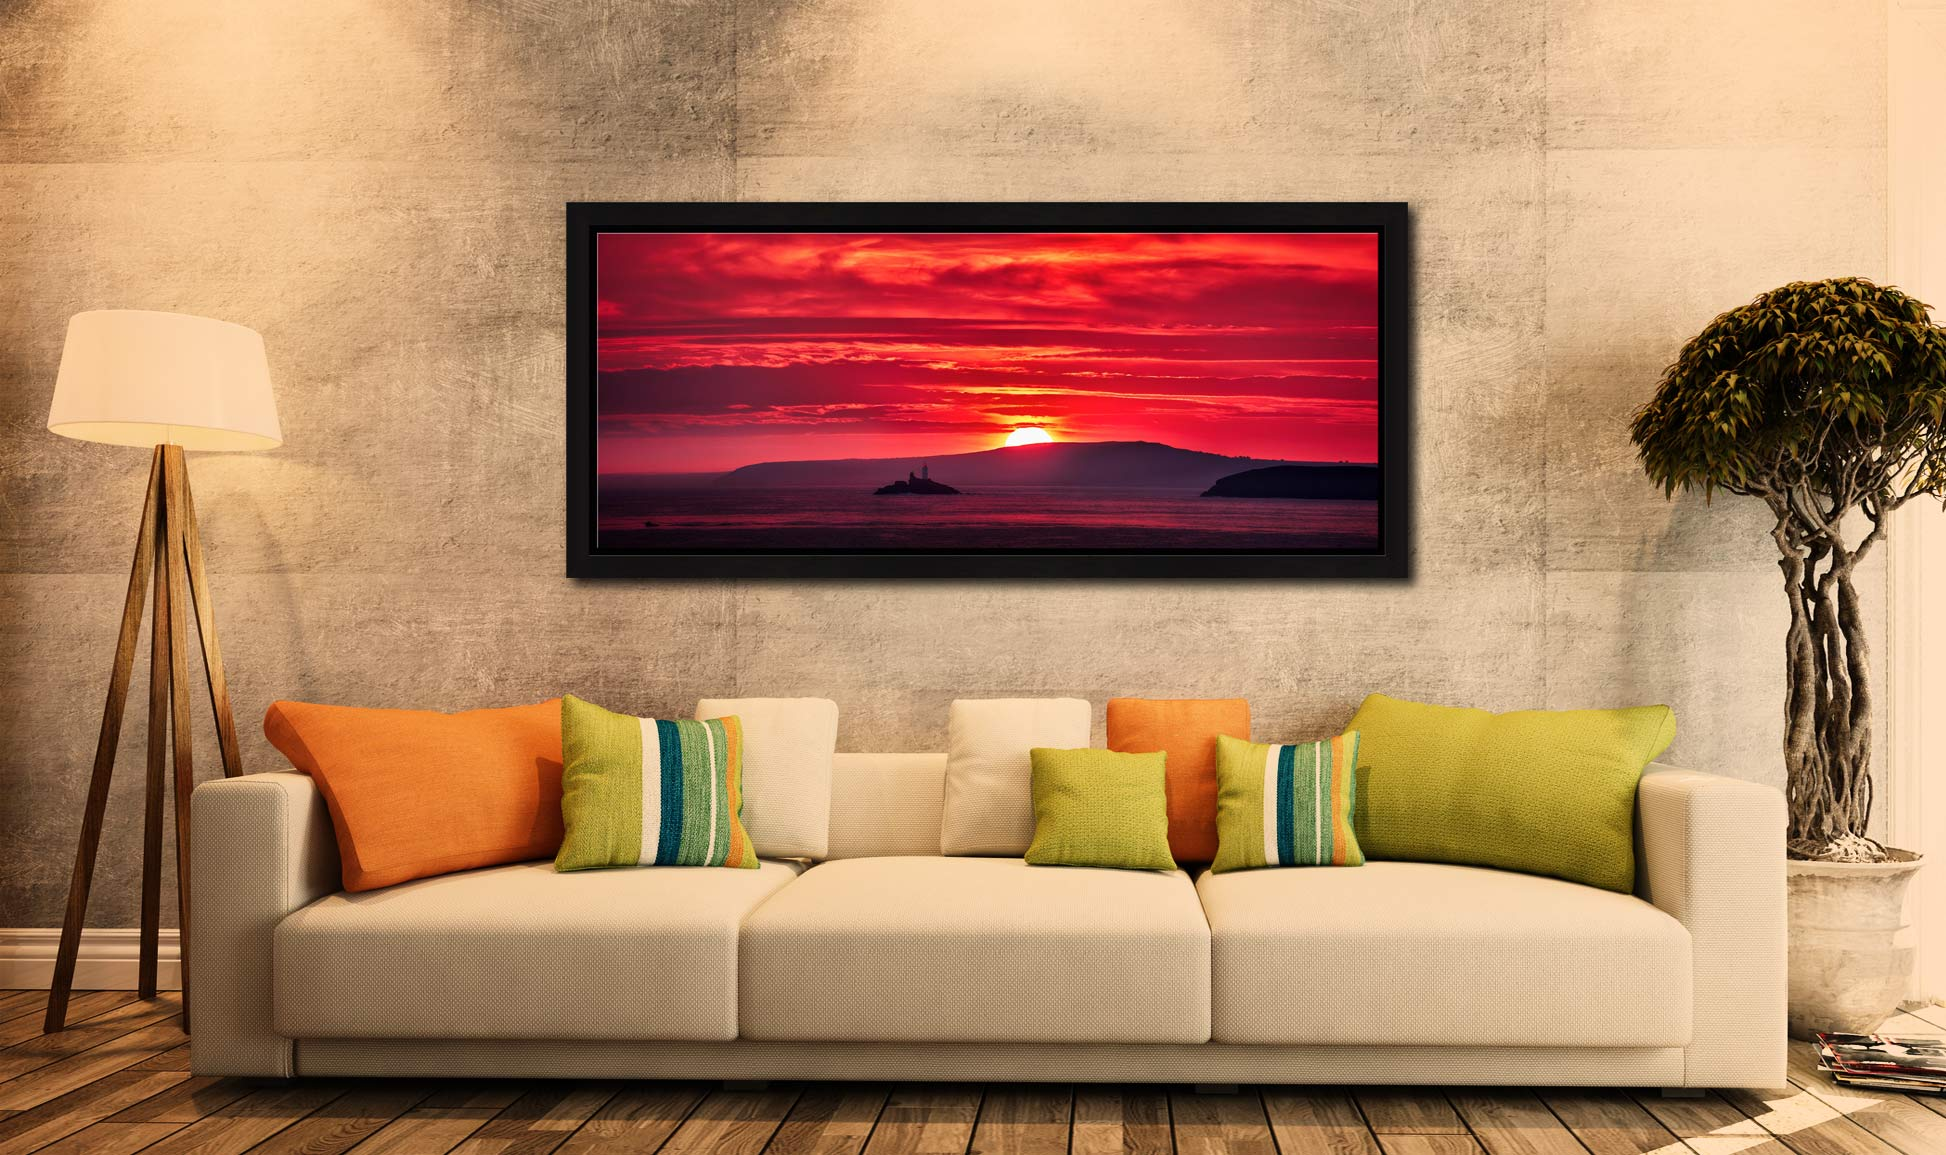 Red Sky in the morning over Godrevy Lighthouse - Black oak floater frame with acrylic glazing on Wall